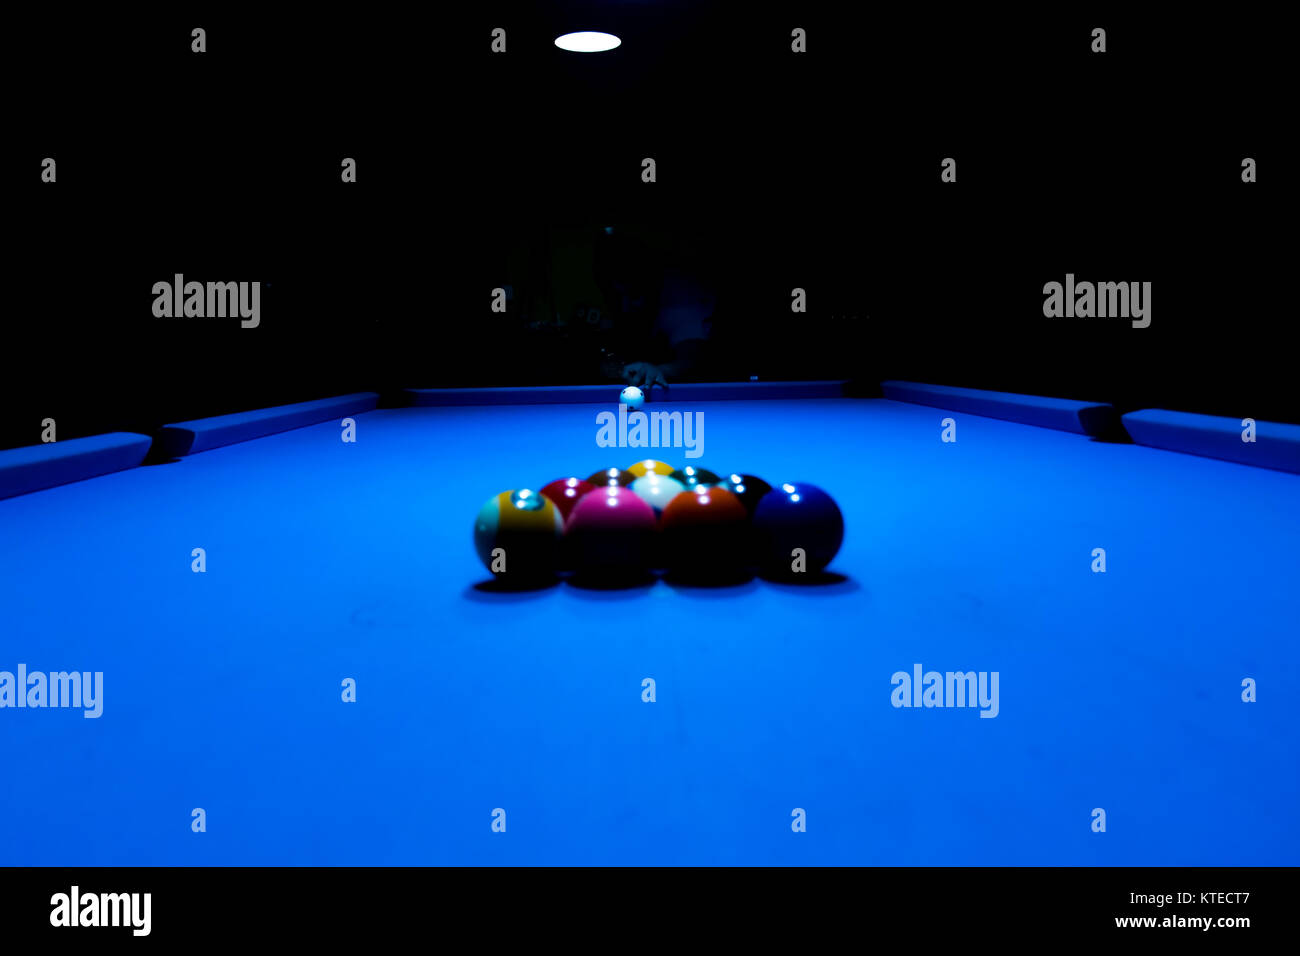 Aiming for an initial kick at the billiard pool table - Stock Image